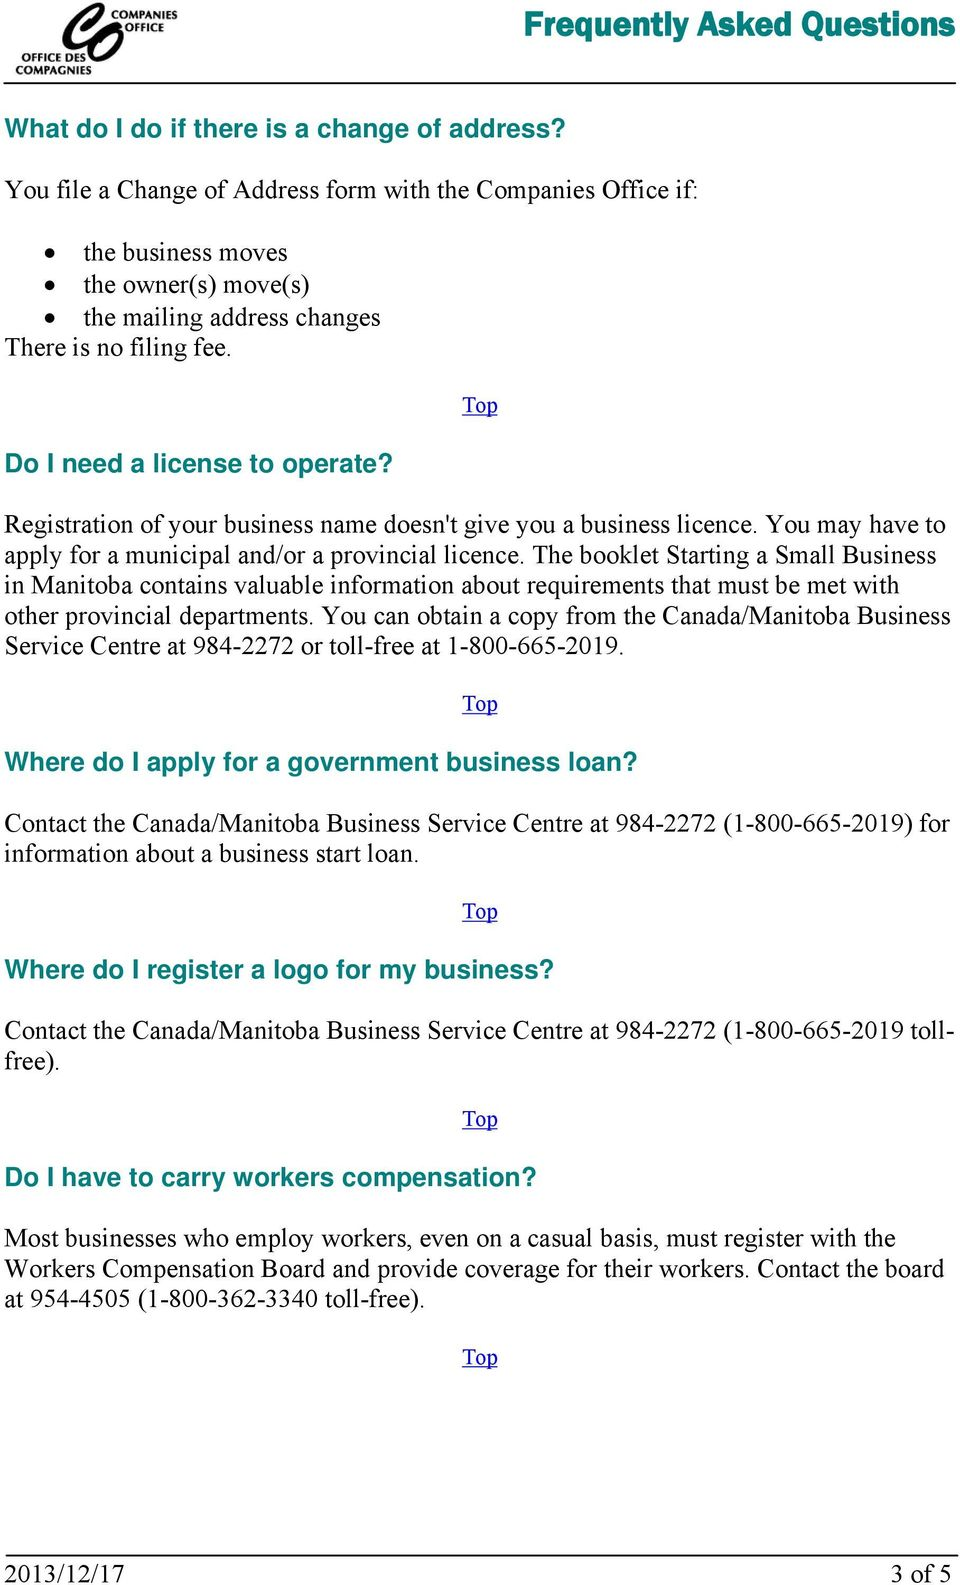 Registration of your business name doesn't give you a business licence. You may have to apply for a municipal and/or a provincial licence.